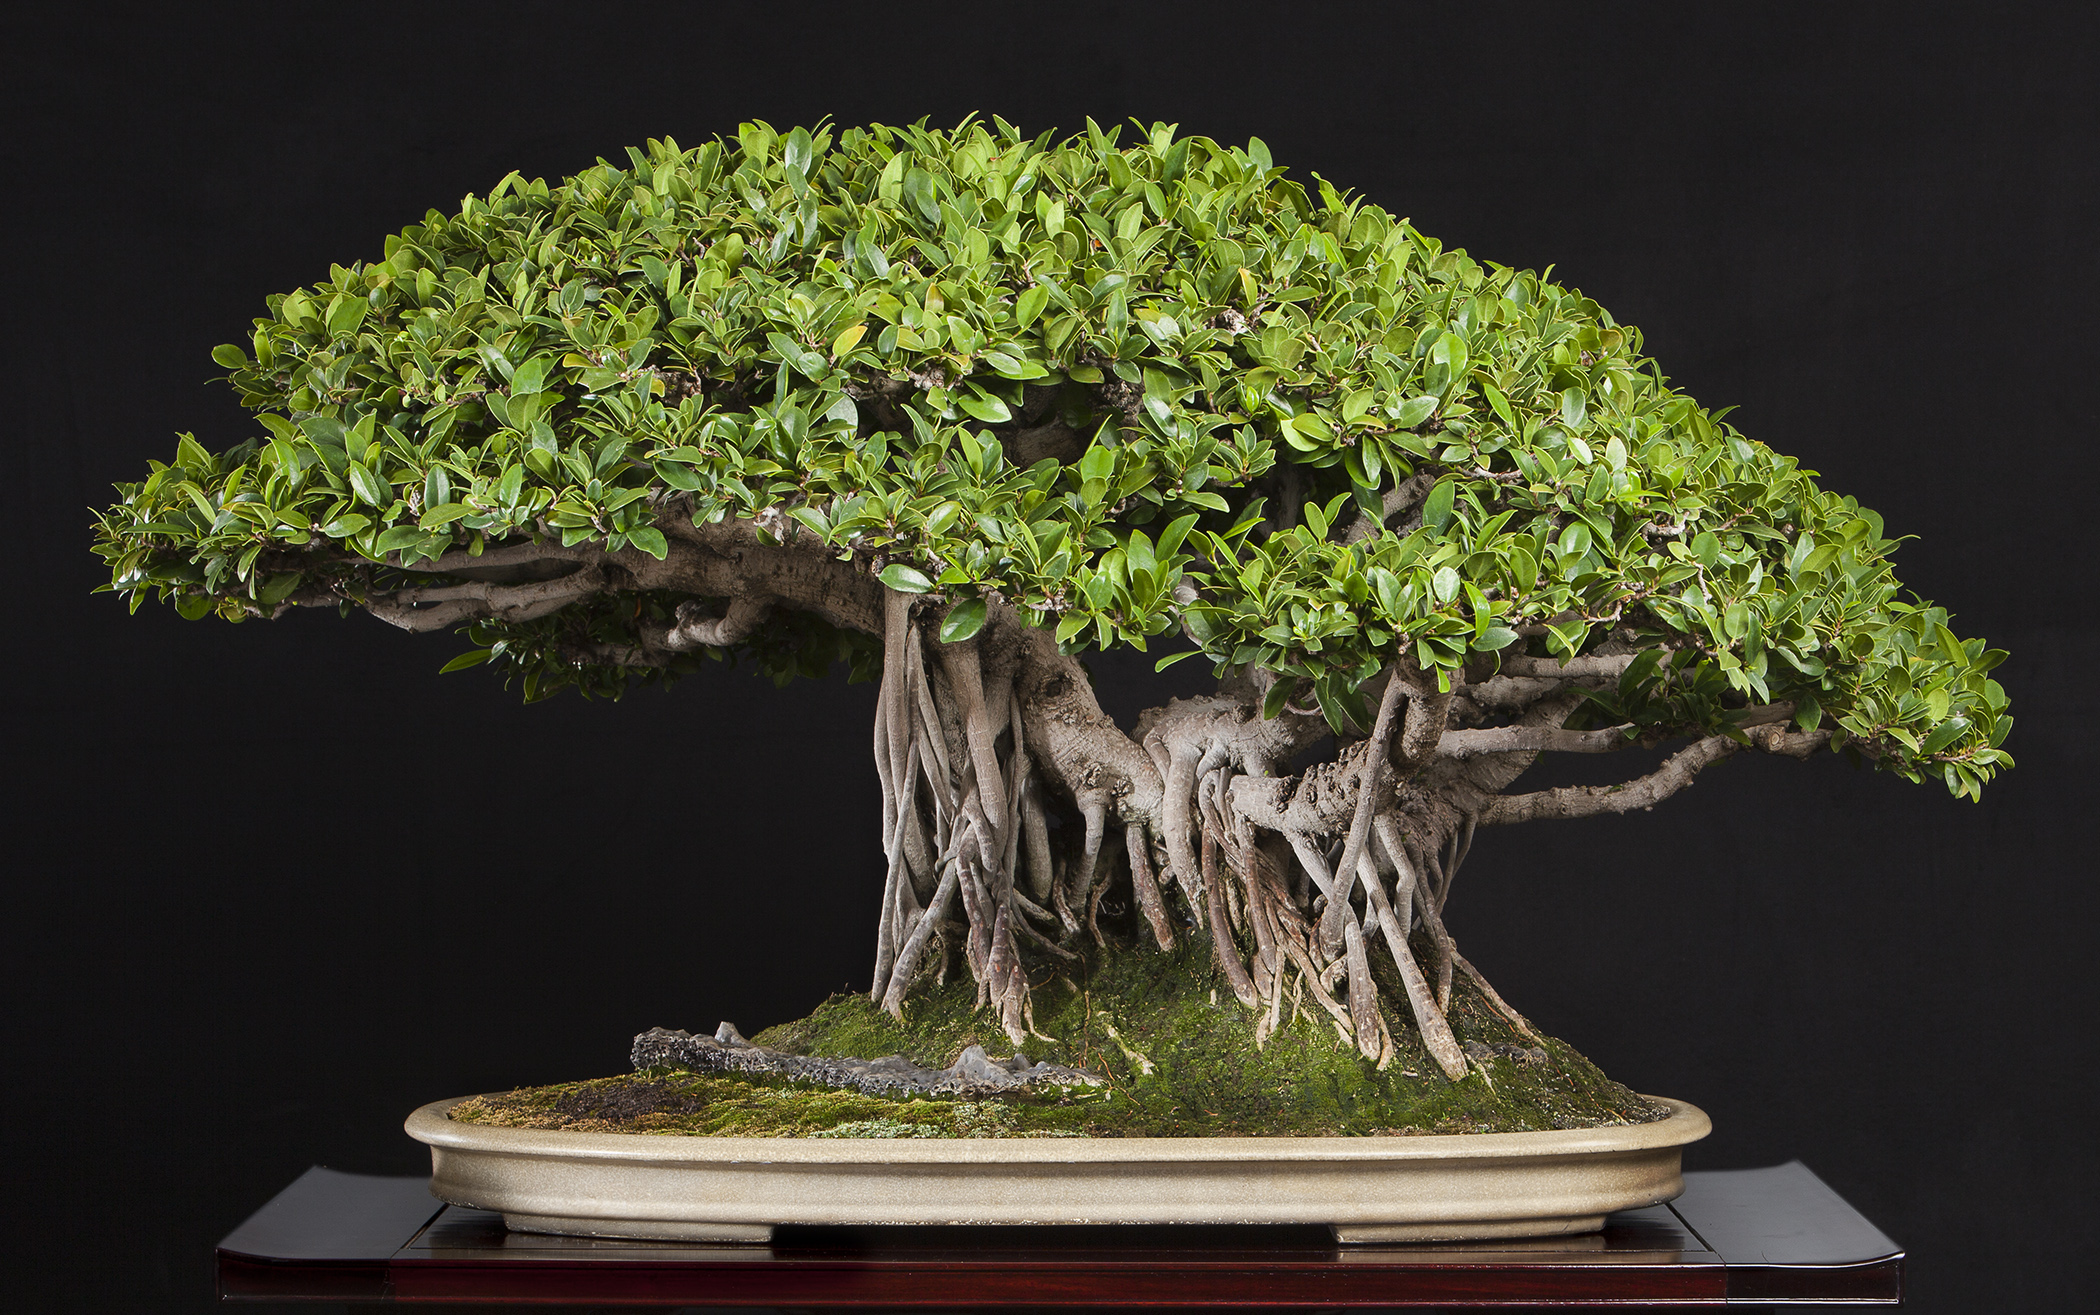 """Ficus microcarpa  'Kaneshiro'  In training since 1975  Gift of Haruo Kaneshiro, 1990  This ficus was hybridized by Hawaii's foremost bonsai master, Haruo Kaneshiro. The styling imitates the natural look of old banyan trees in the tropics, with their aerial roots reaching down to add multiple """"trunks."""""""